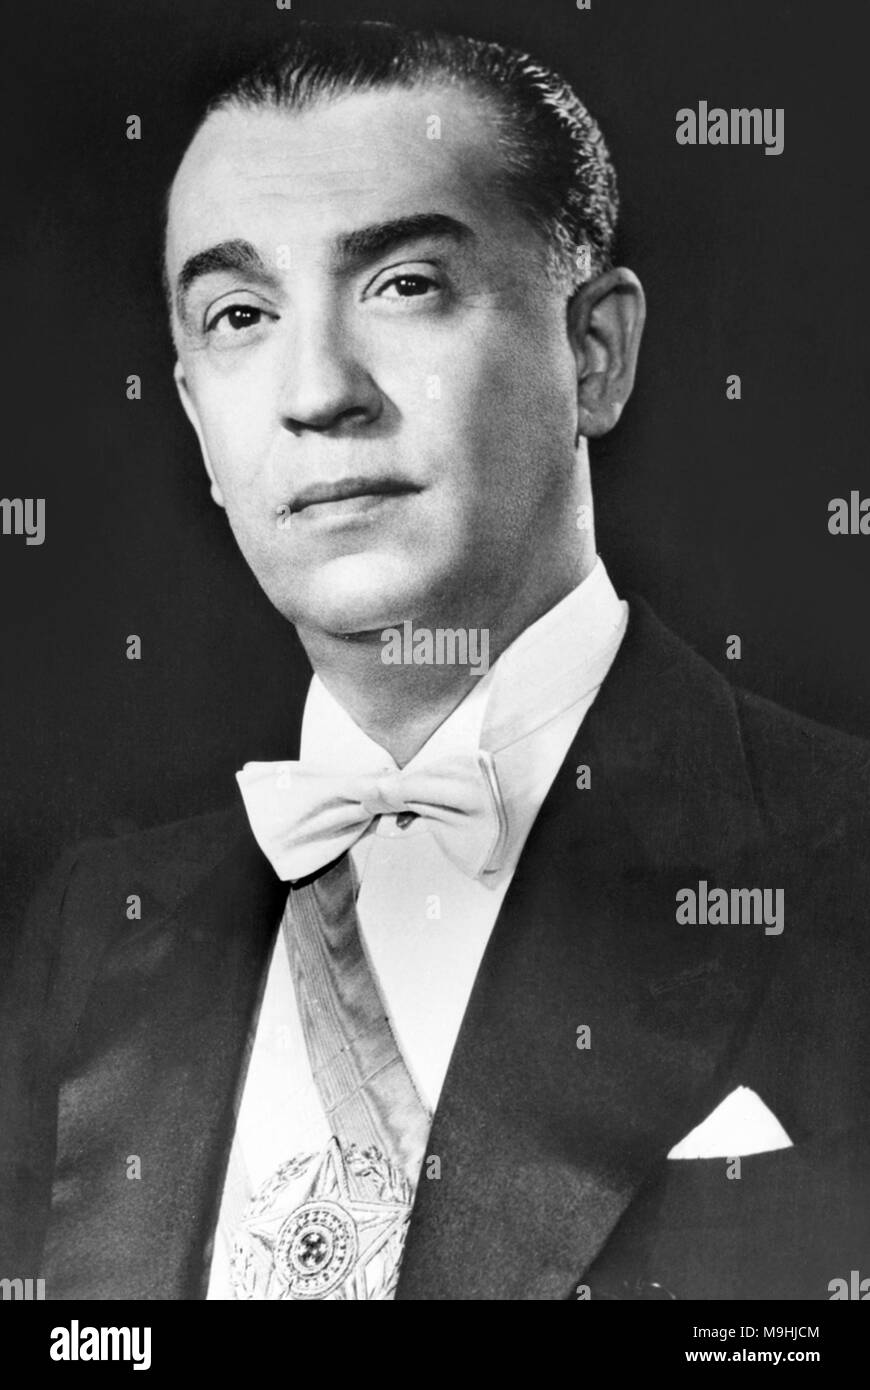 Juscelino Kubitschek de Oliveira (1902 – 1976), Brazilian politician who served as the 21st President of Brazil from 1956 to 1961. - Stock Image